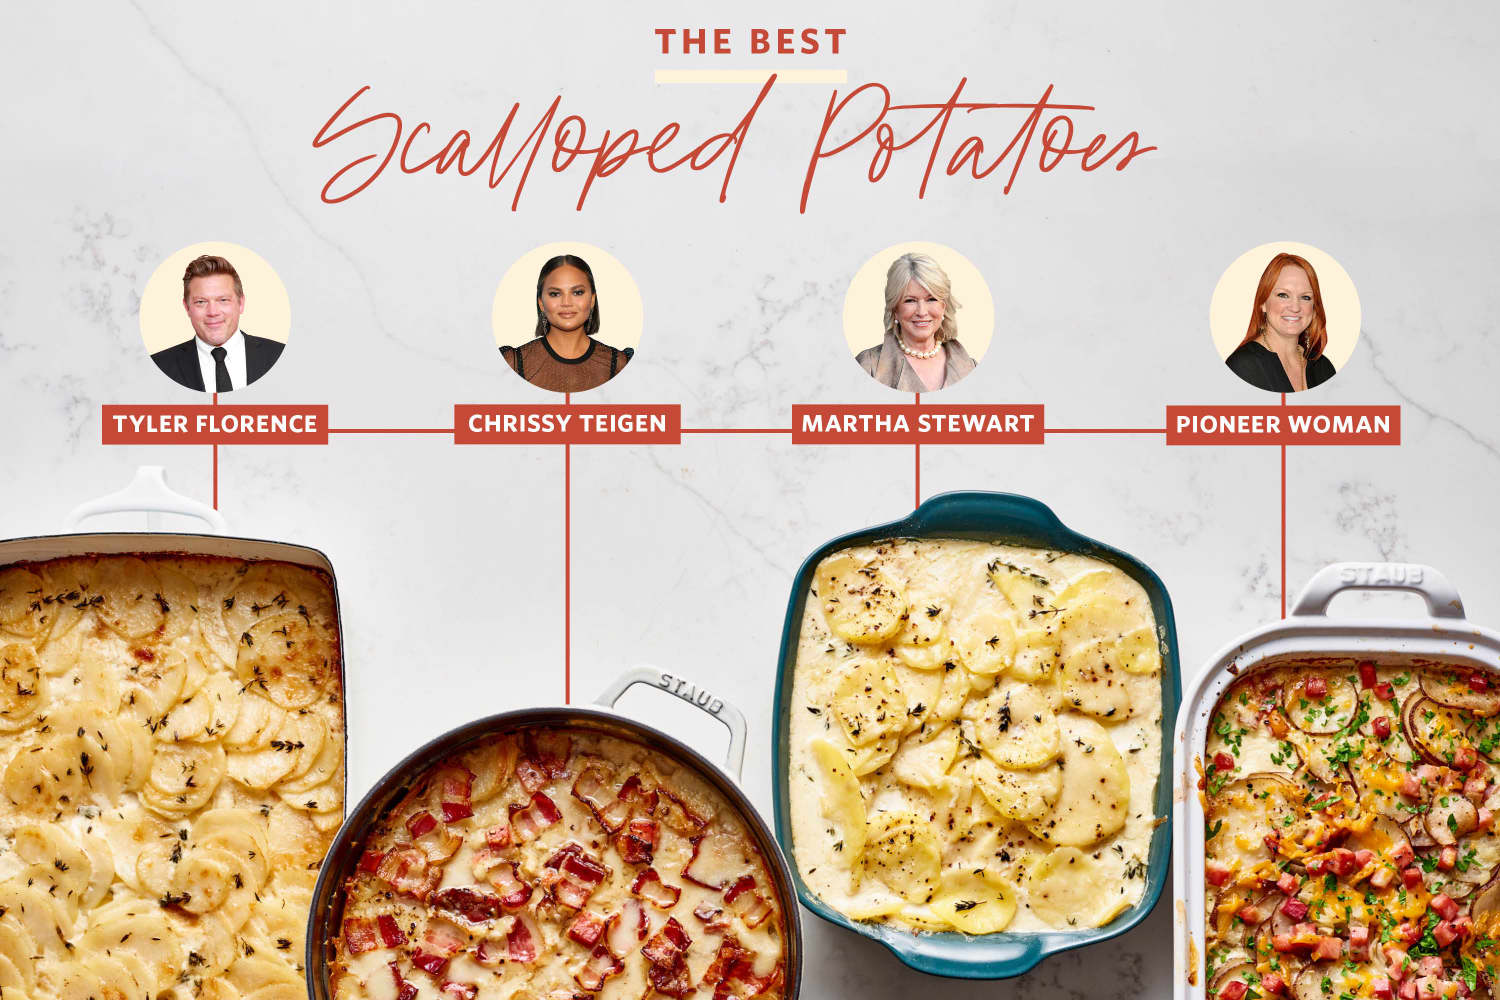 We Tested 4 Famous Scalloped Potato Recipes and Found a Clear Winner